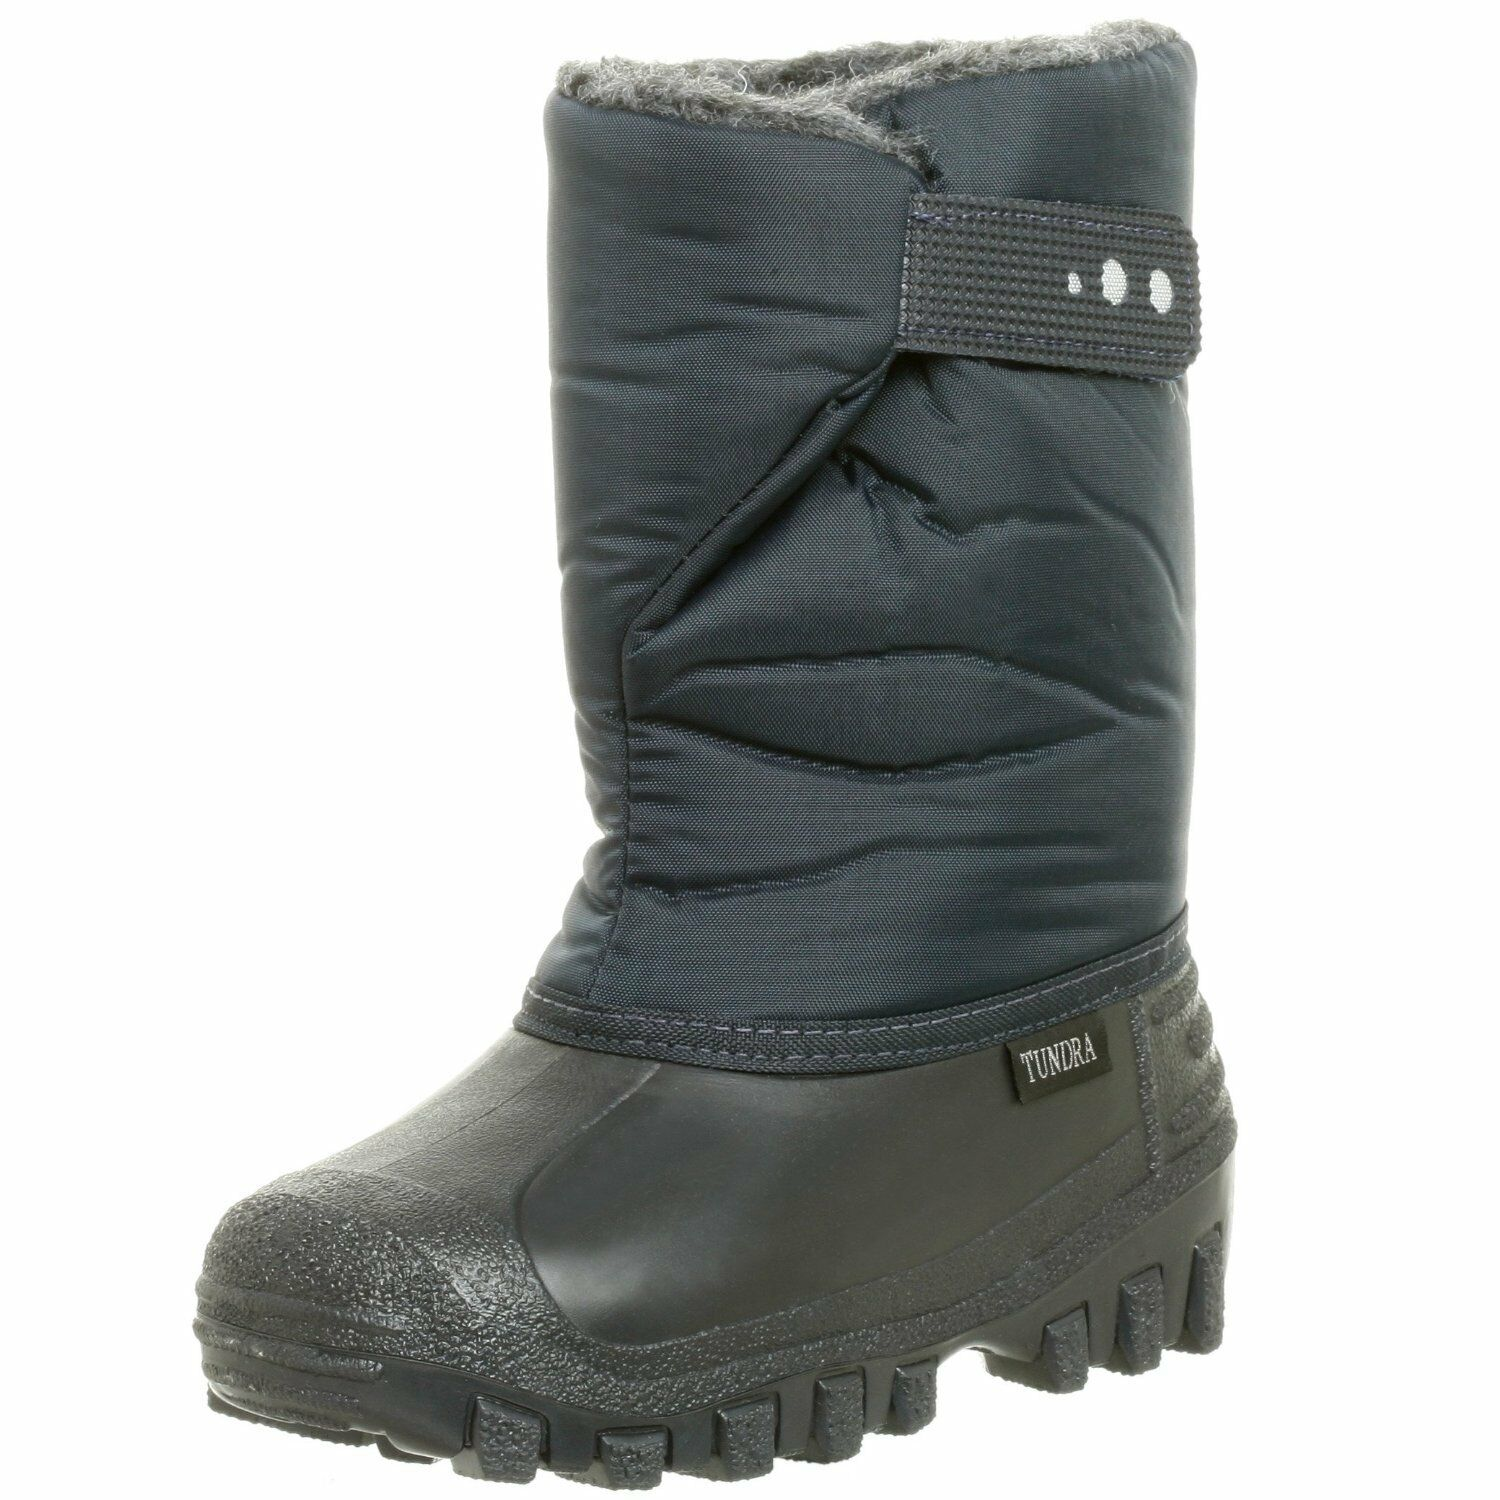 Boys-toddler-size-7-winter-snow-boots-navy Grey-insulated-waterproof-new Teddy